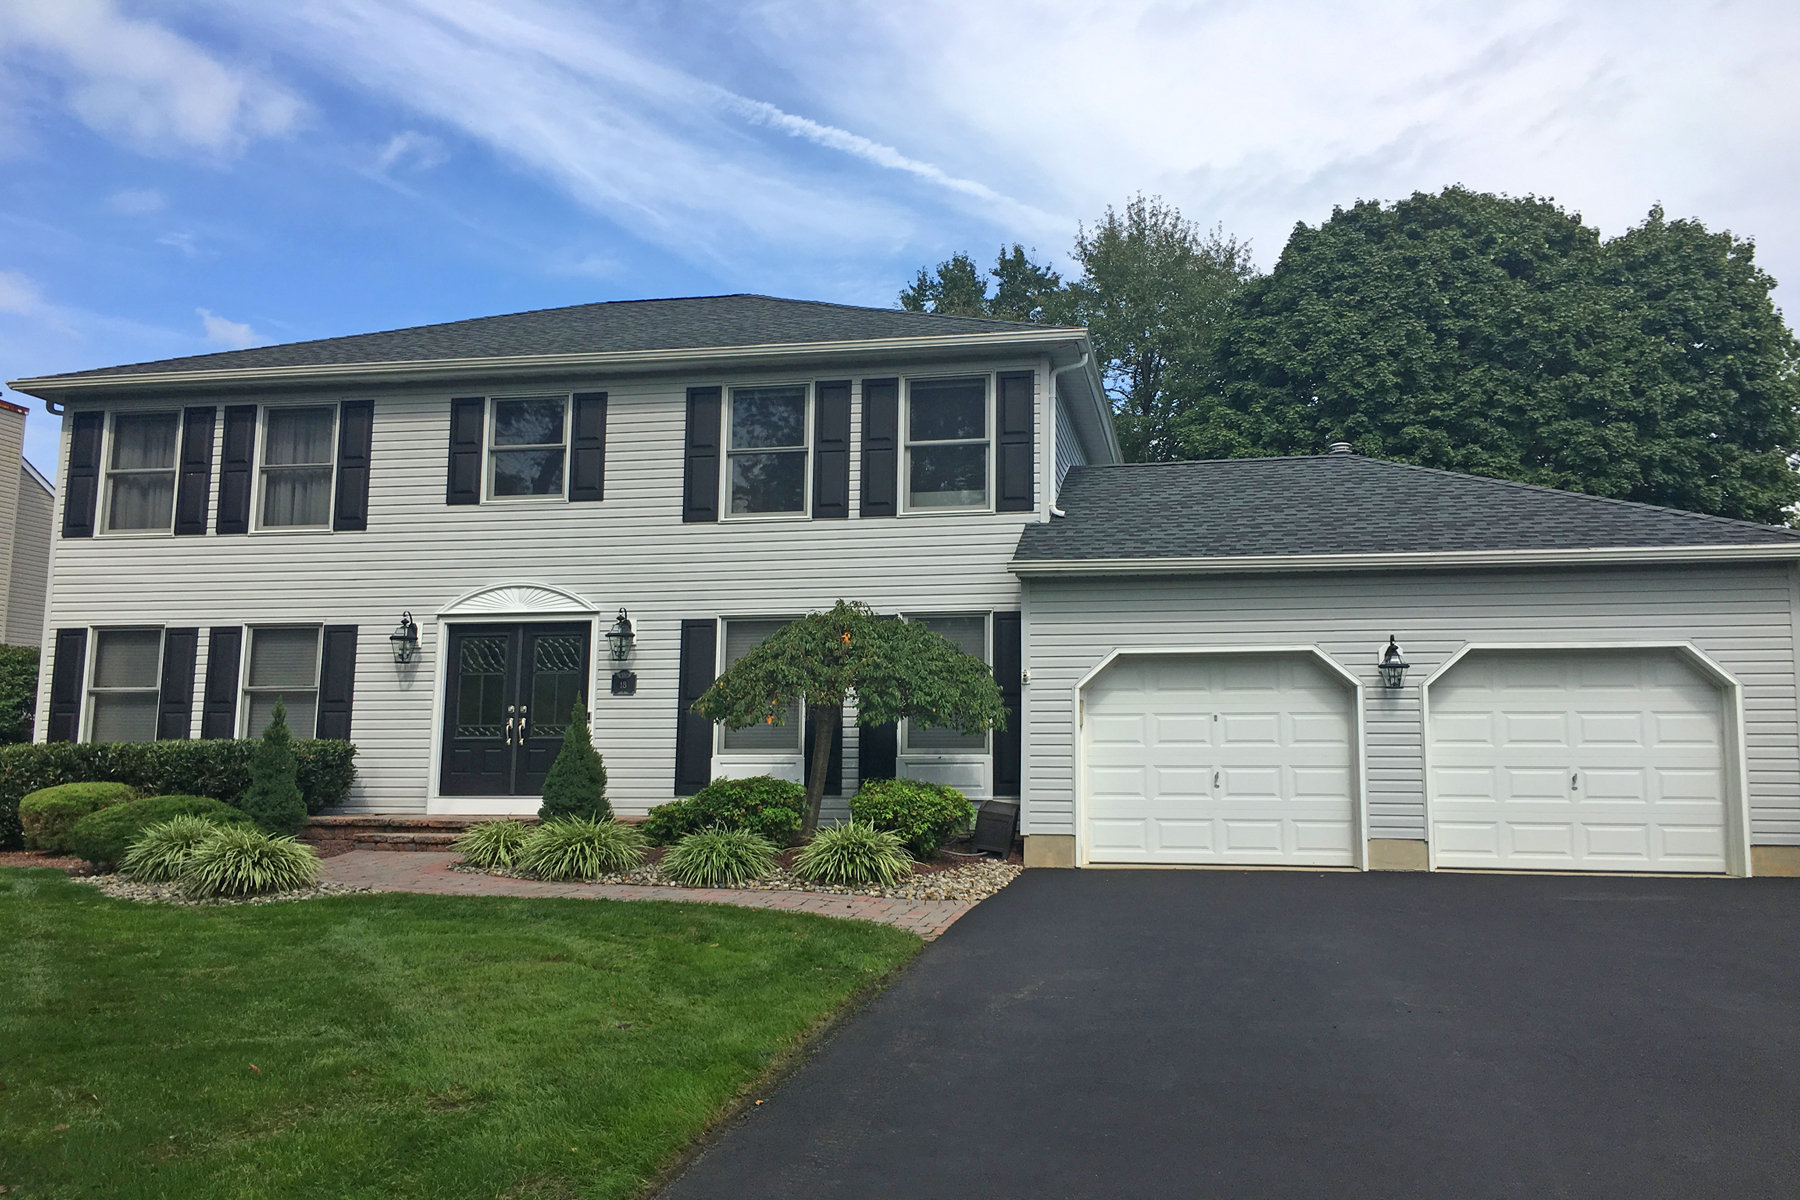 Single Family Home for Sale at Beautifully Appointed Colonial In Heather Ridge 18 Sunny Woods Lane, Jackson, New Jersey 08527 United States